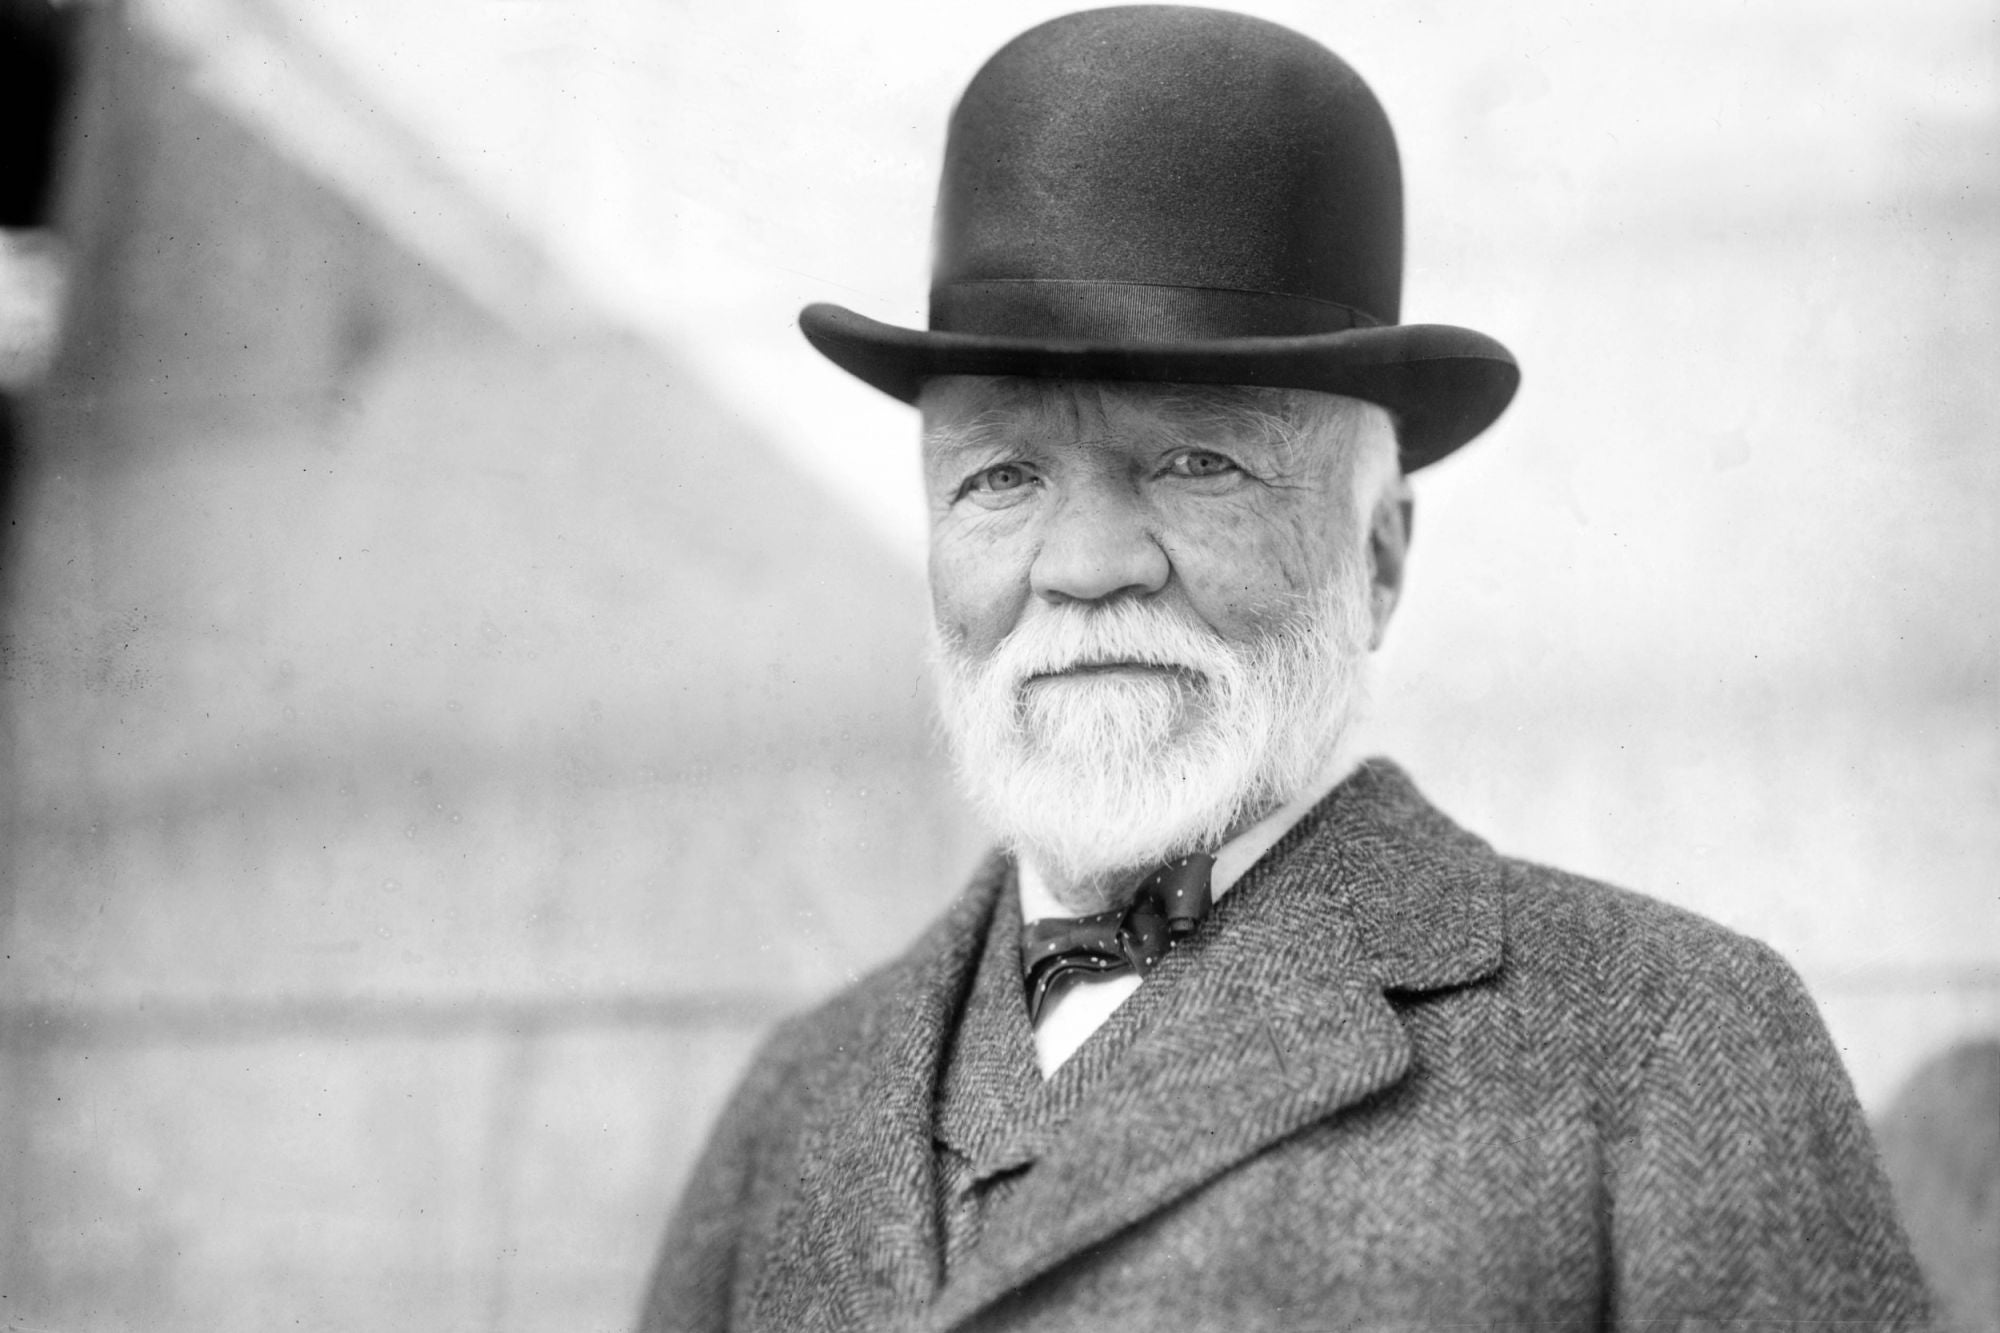 andrew carnegie 1889 essay wealth One of the most profoundly impactful industrialists, andrew carnegie, was additionally a respected philosopher and philanthropist, having written much in his lifetime.